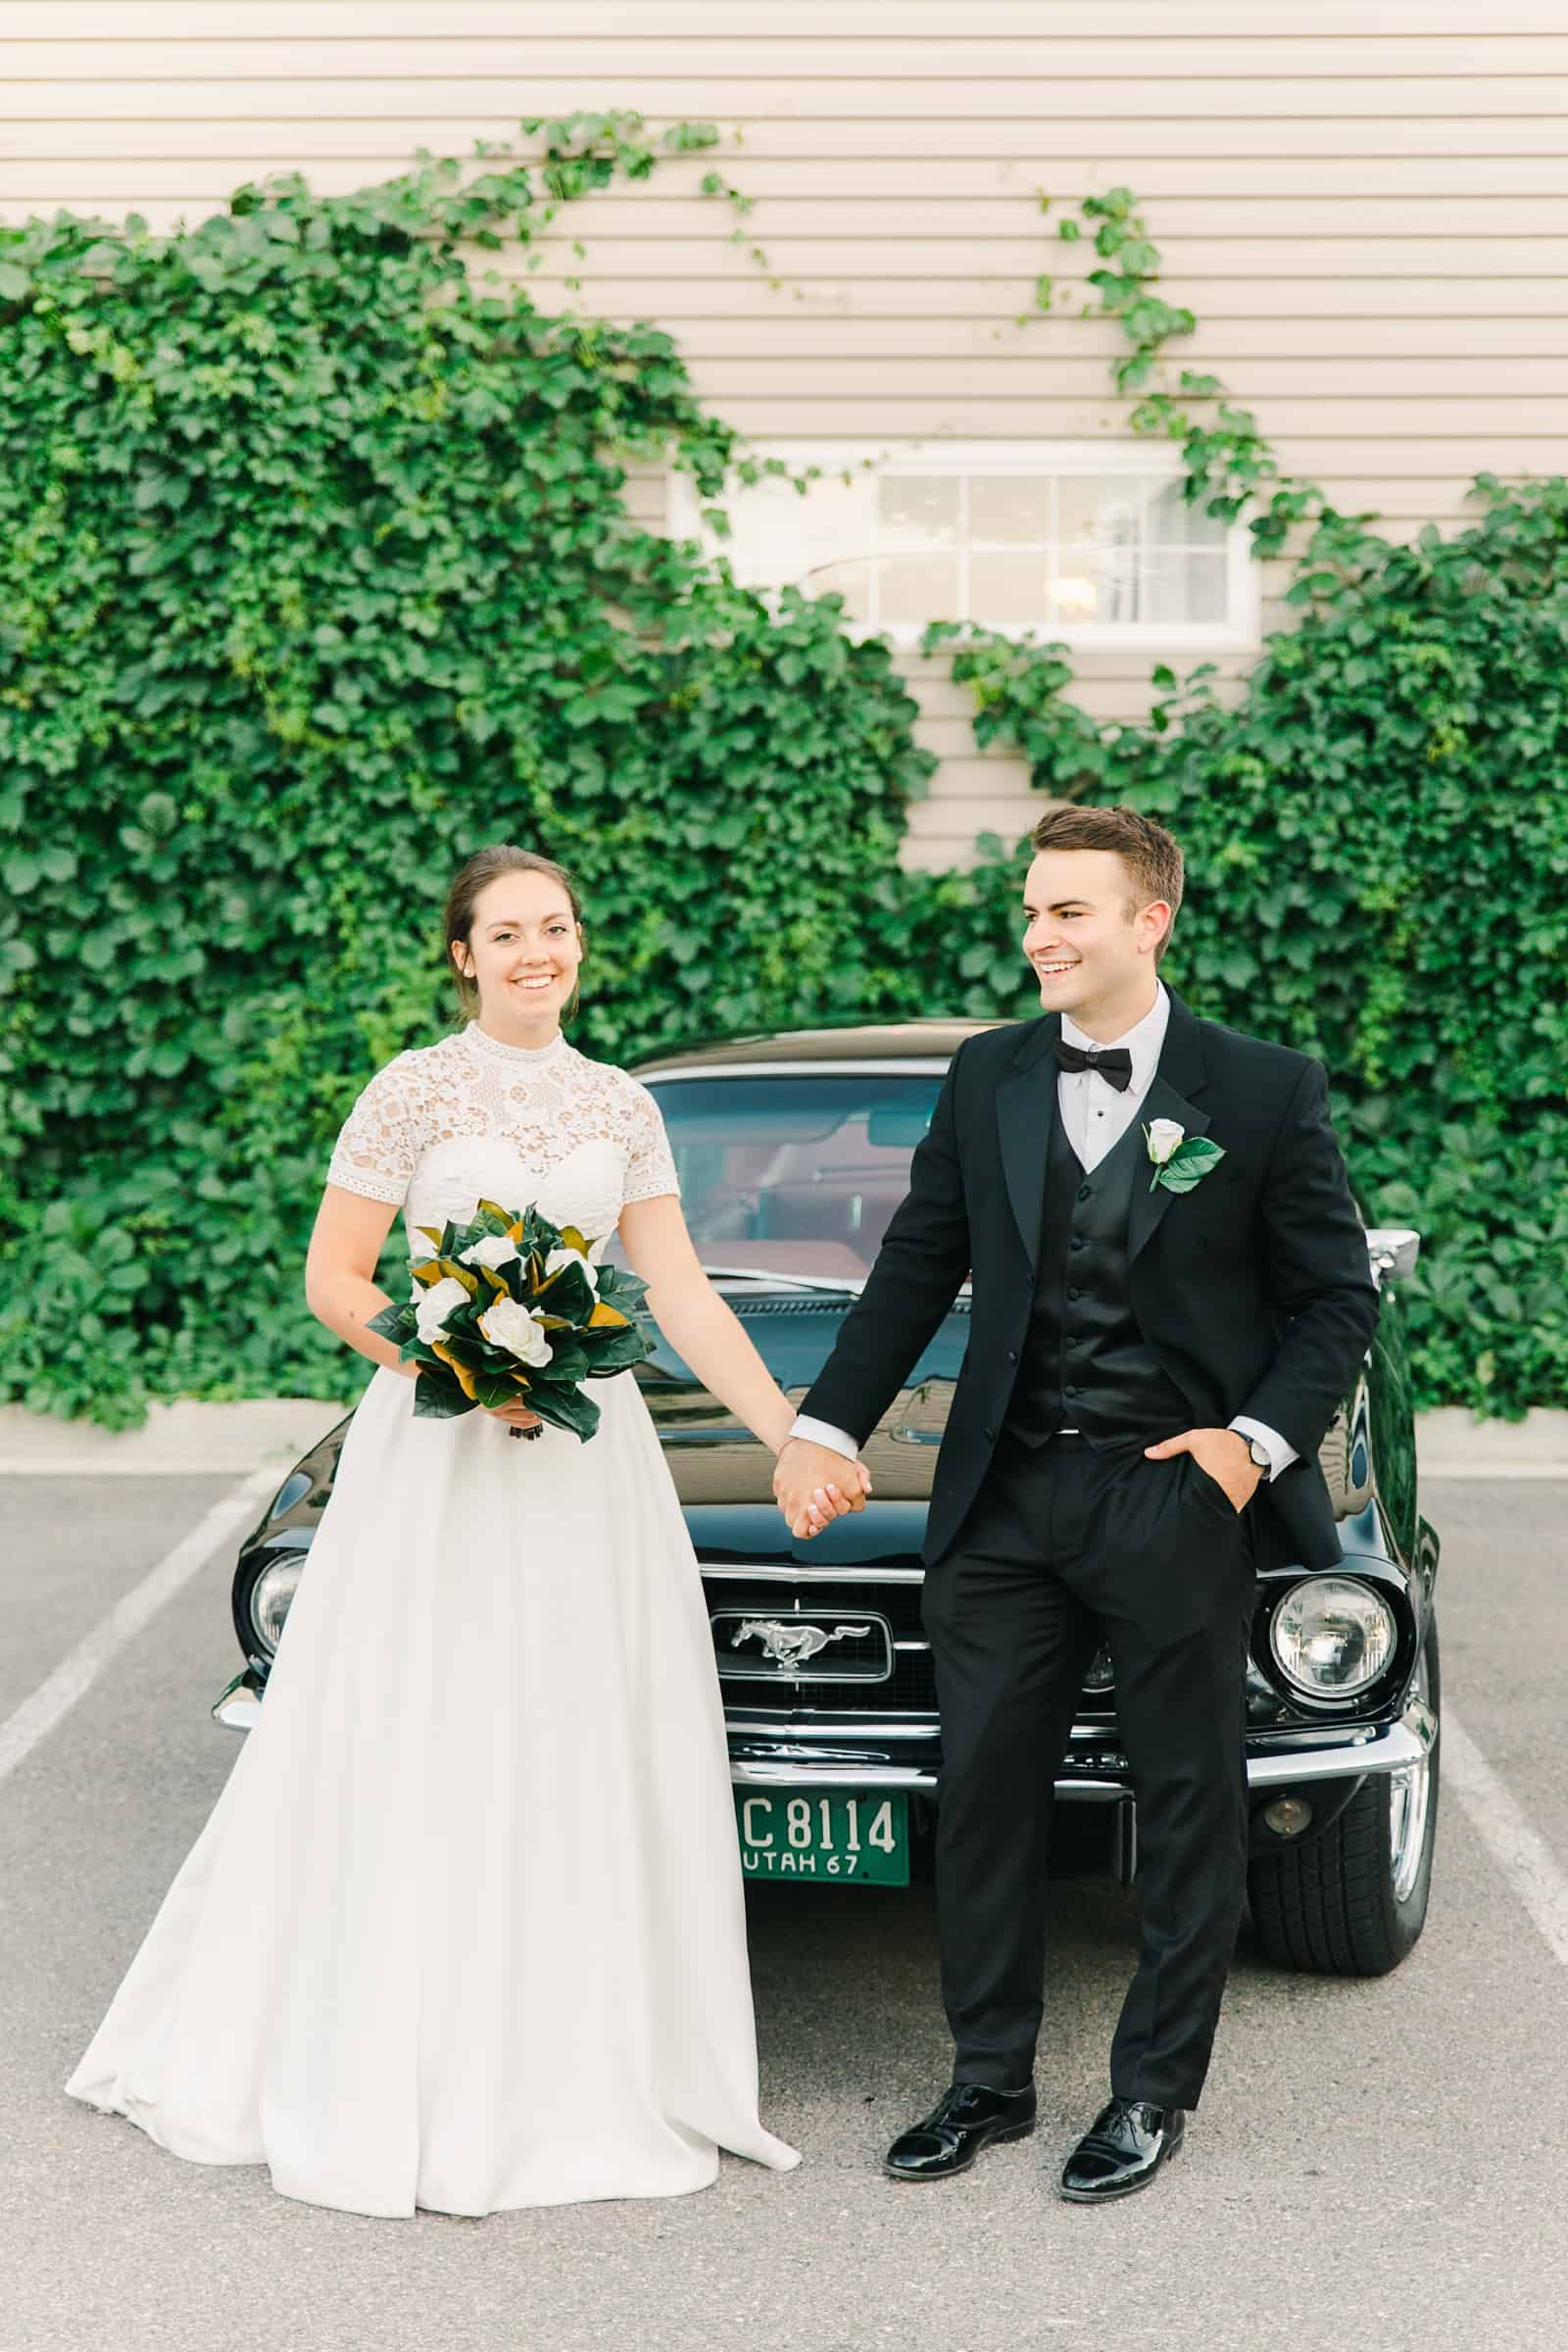 Clarion Gardens Payson Utah Wedding, bride and groom pose with black vintage Mustang convertible, ivy wall background